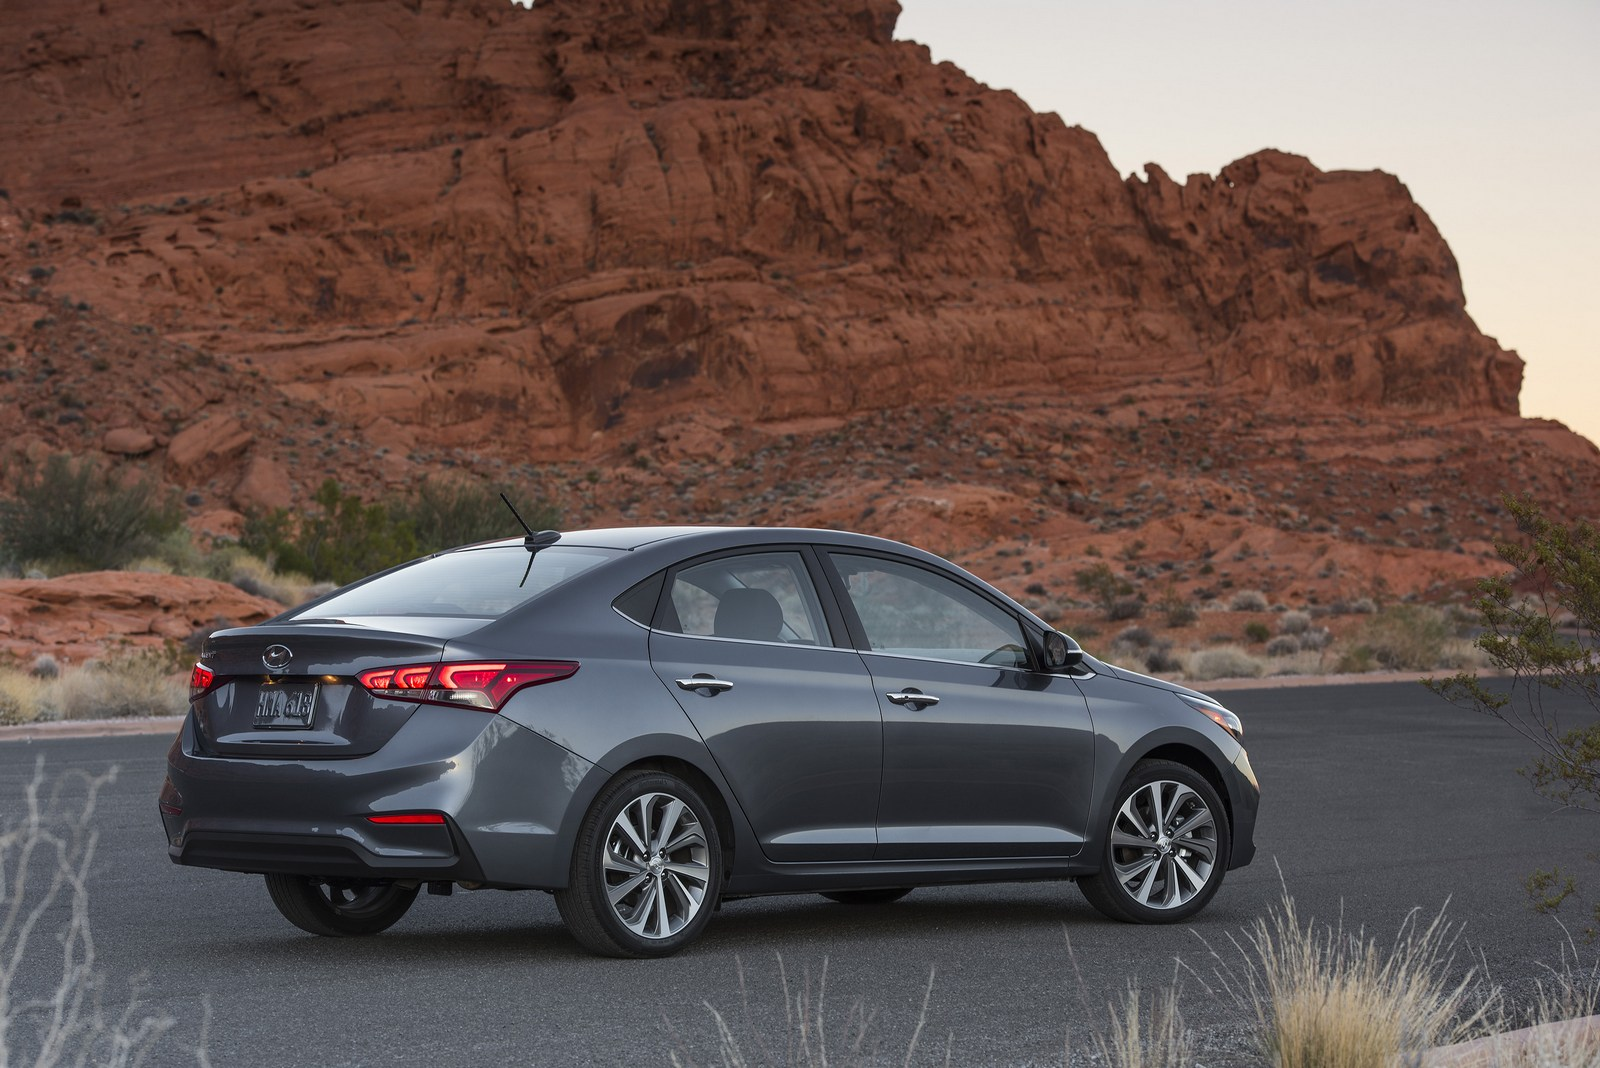 2018 hyundai accent arrives in america starting from 14 995 carscoops. Black Bedroom Furniture Sets. Home Design Ideas